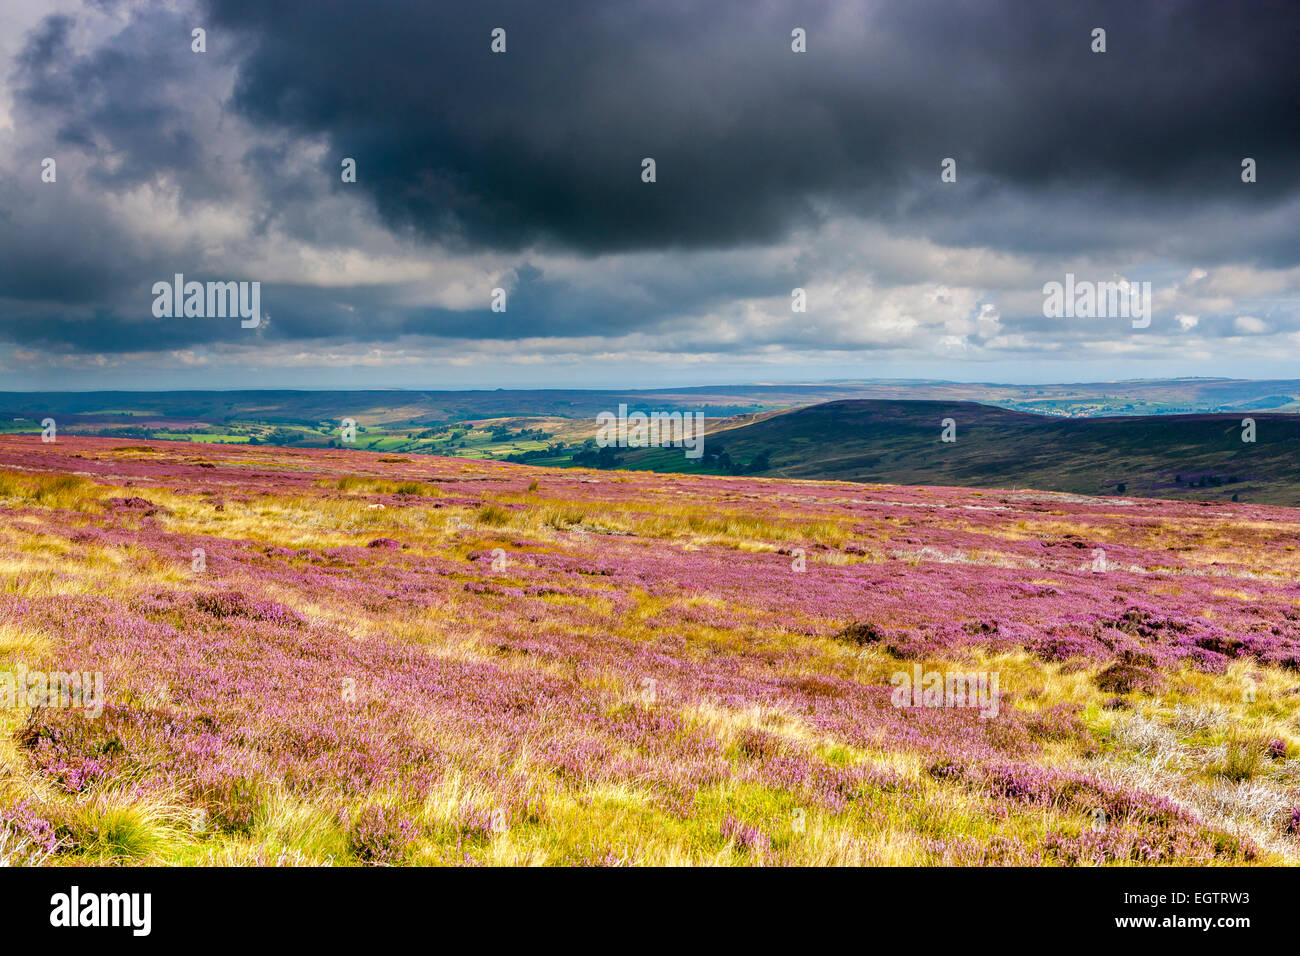 A view over moors near Castelton, North York Moors National Park, North Yorkshire, England, United Kingdom, Europe. Stock Photo